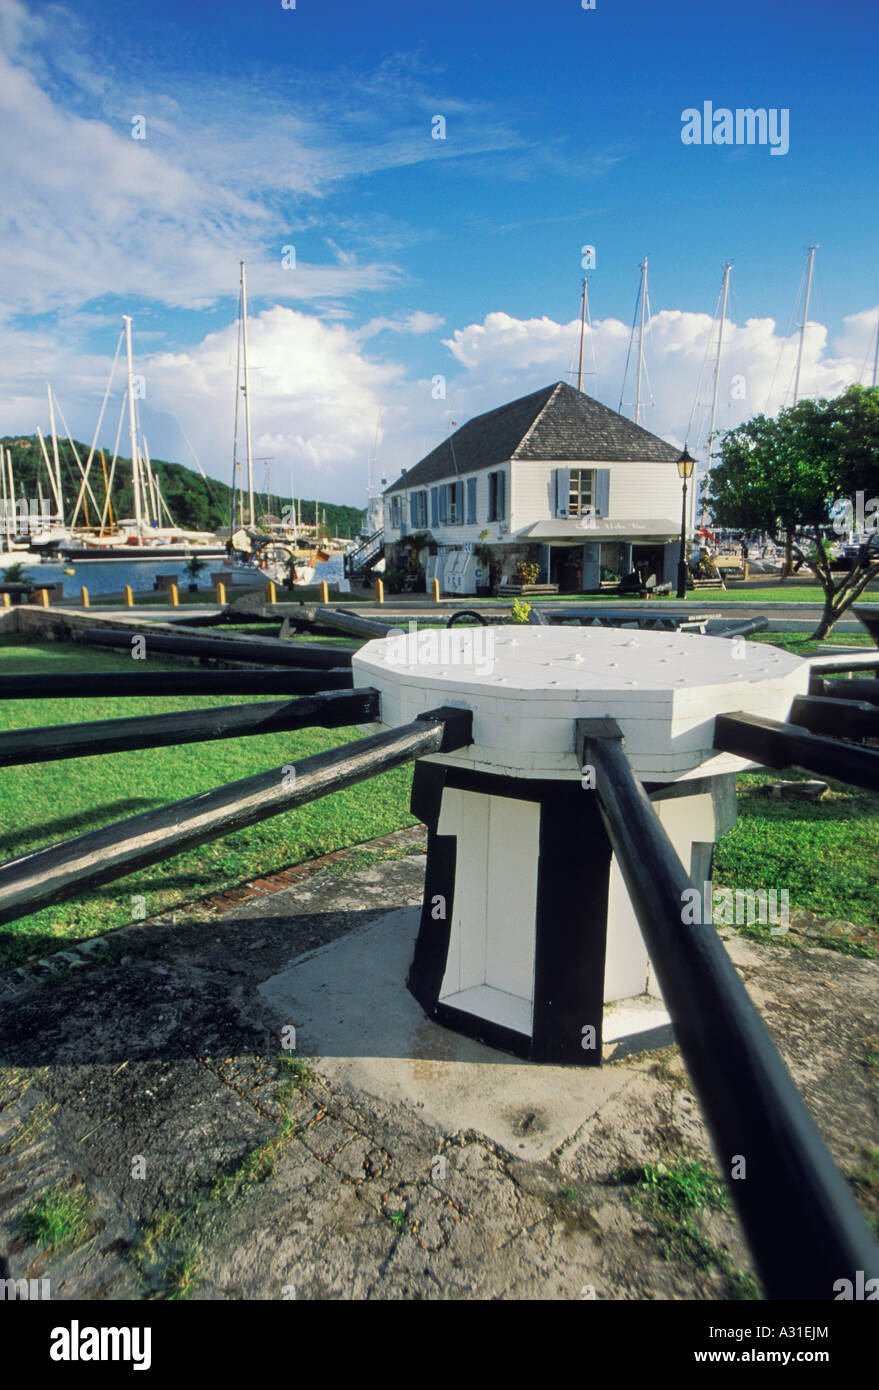 A 19th century winch in the Nelson s Dockyard National Park English Harbour Antigua - Stock Image